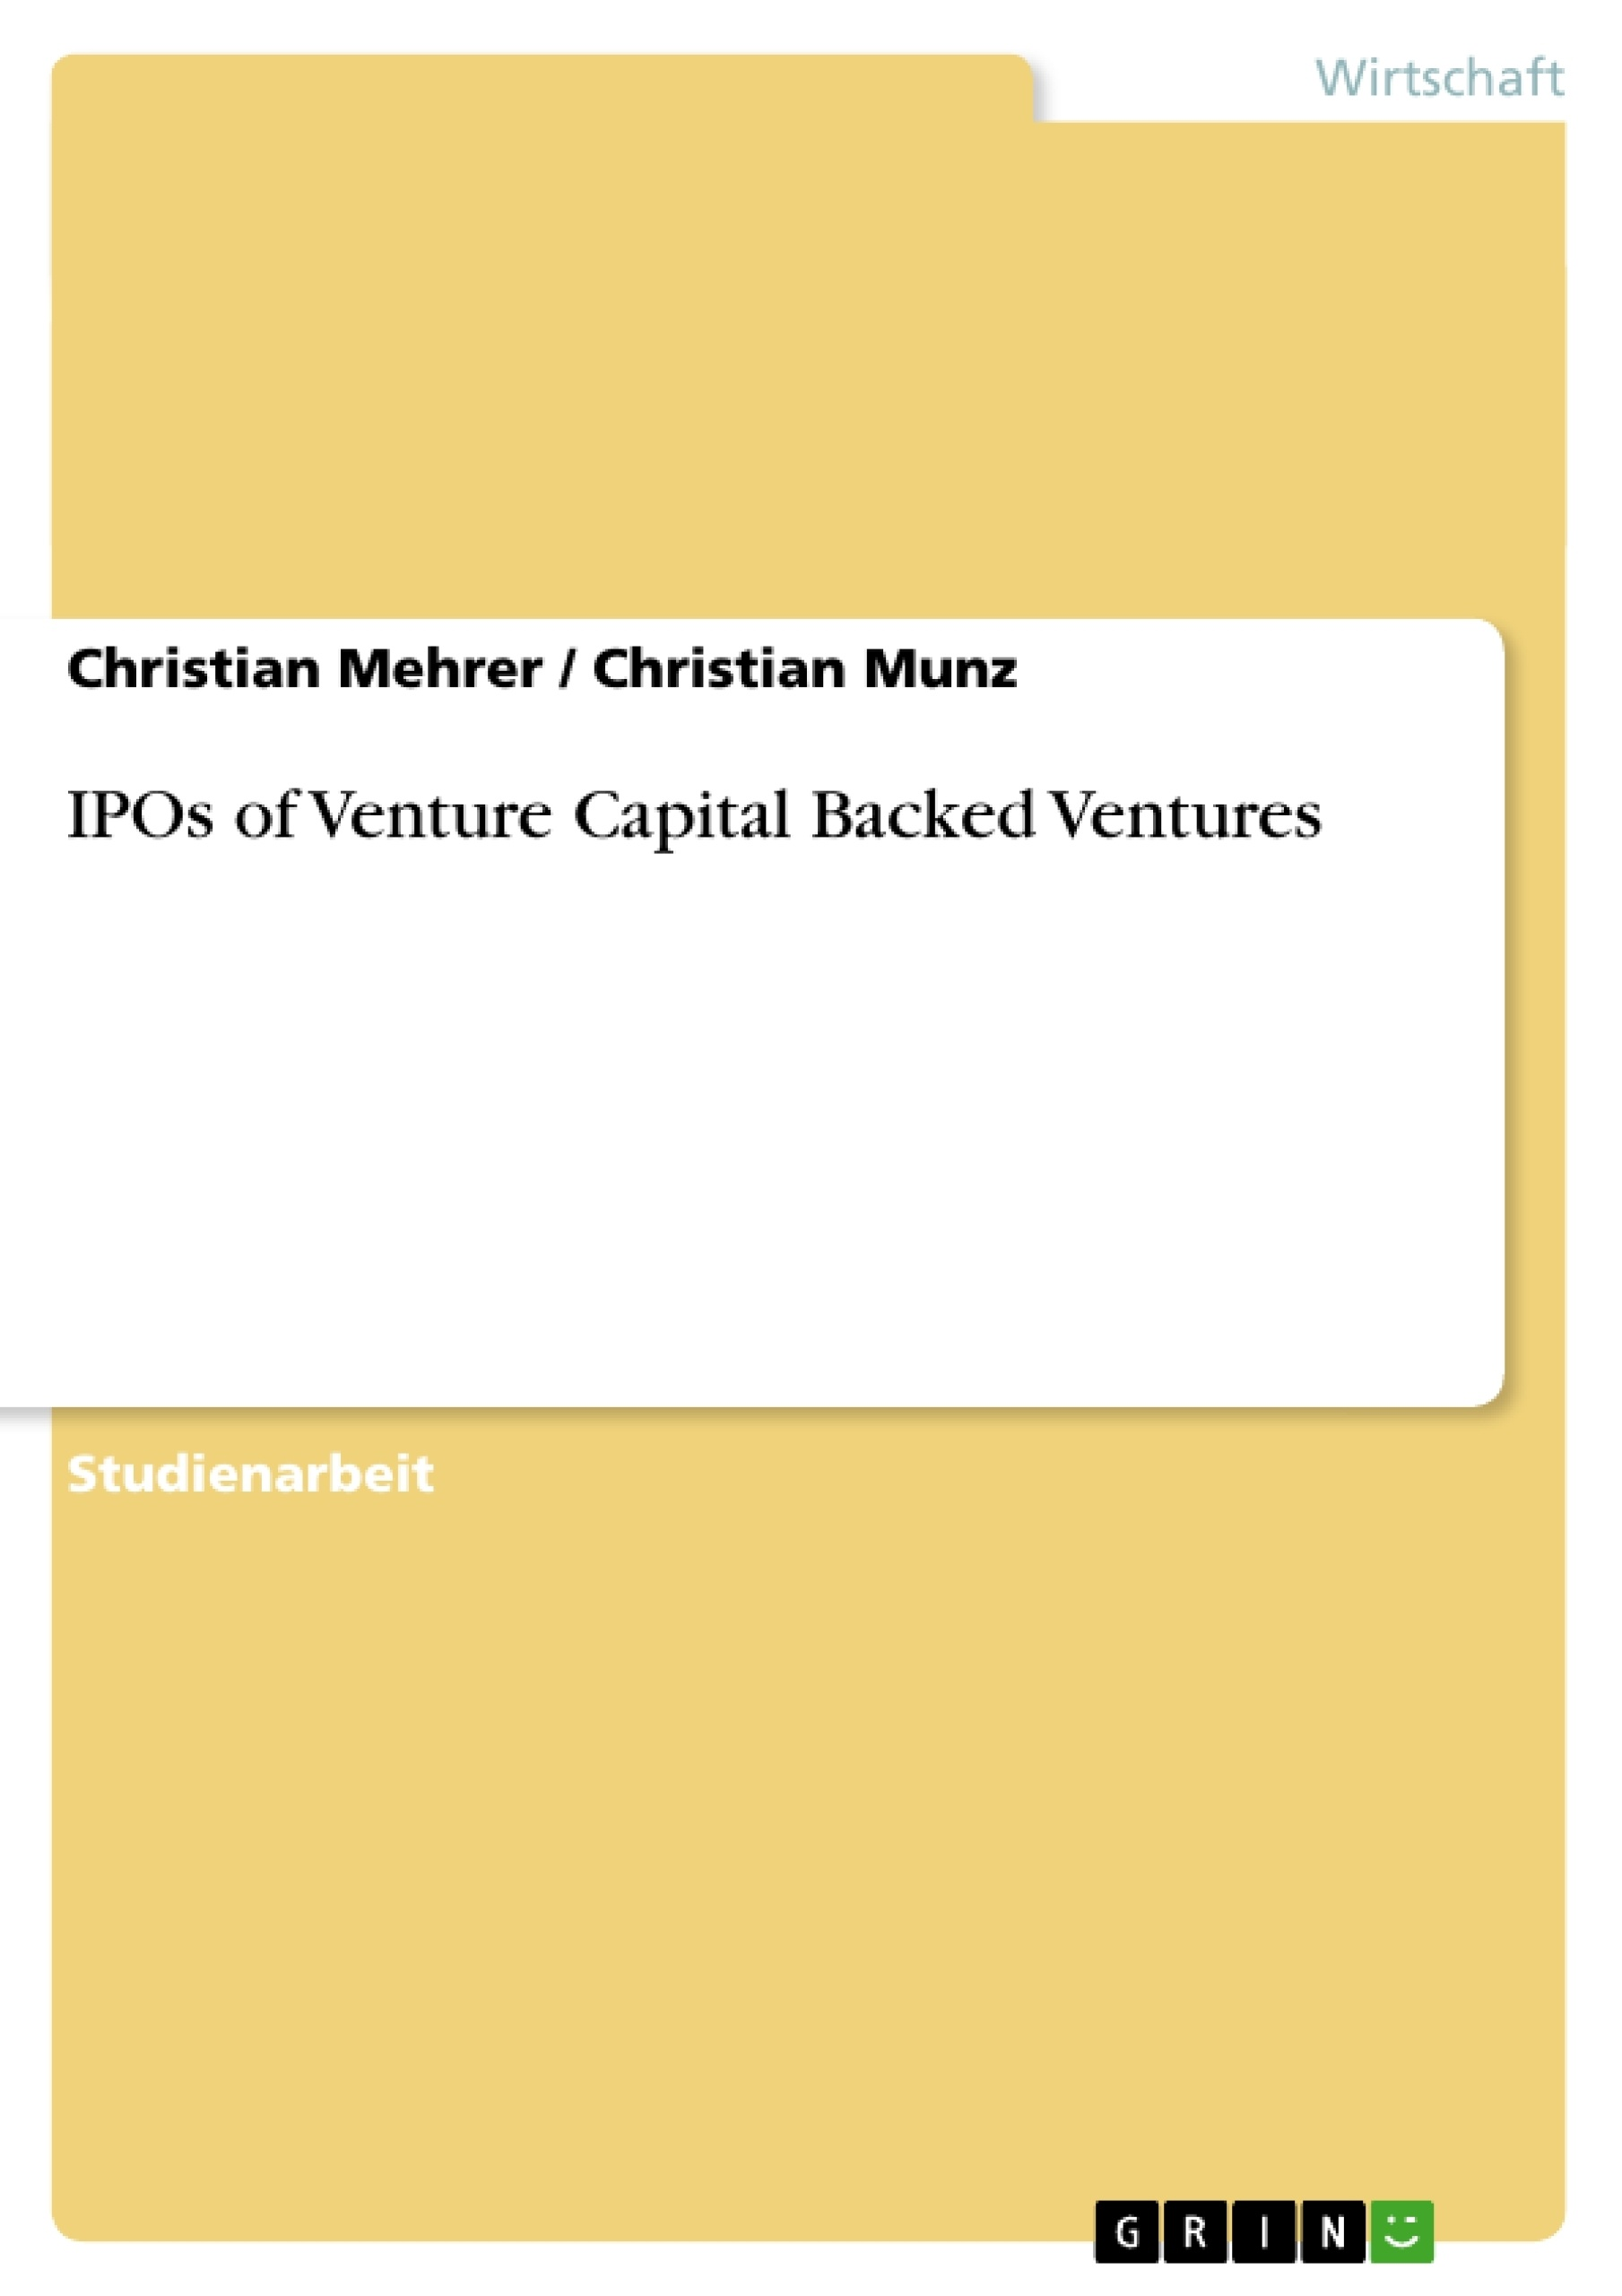 Titel: IPOs of Venture Capital Backed Ventures